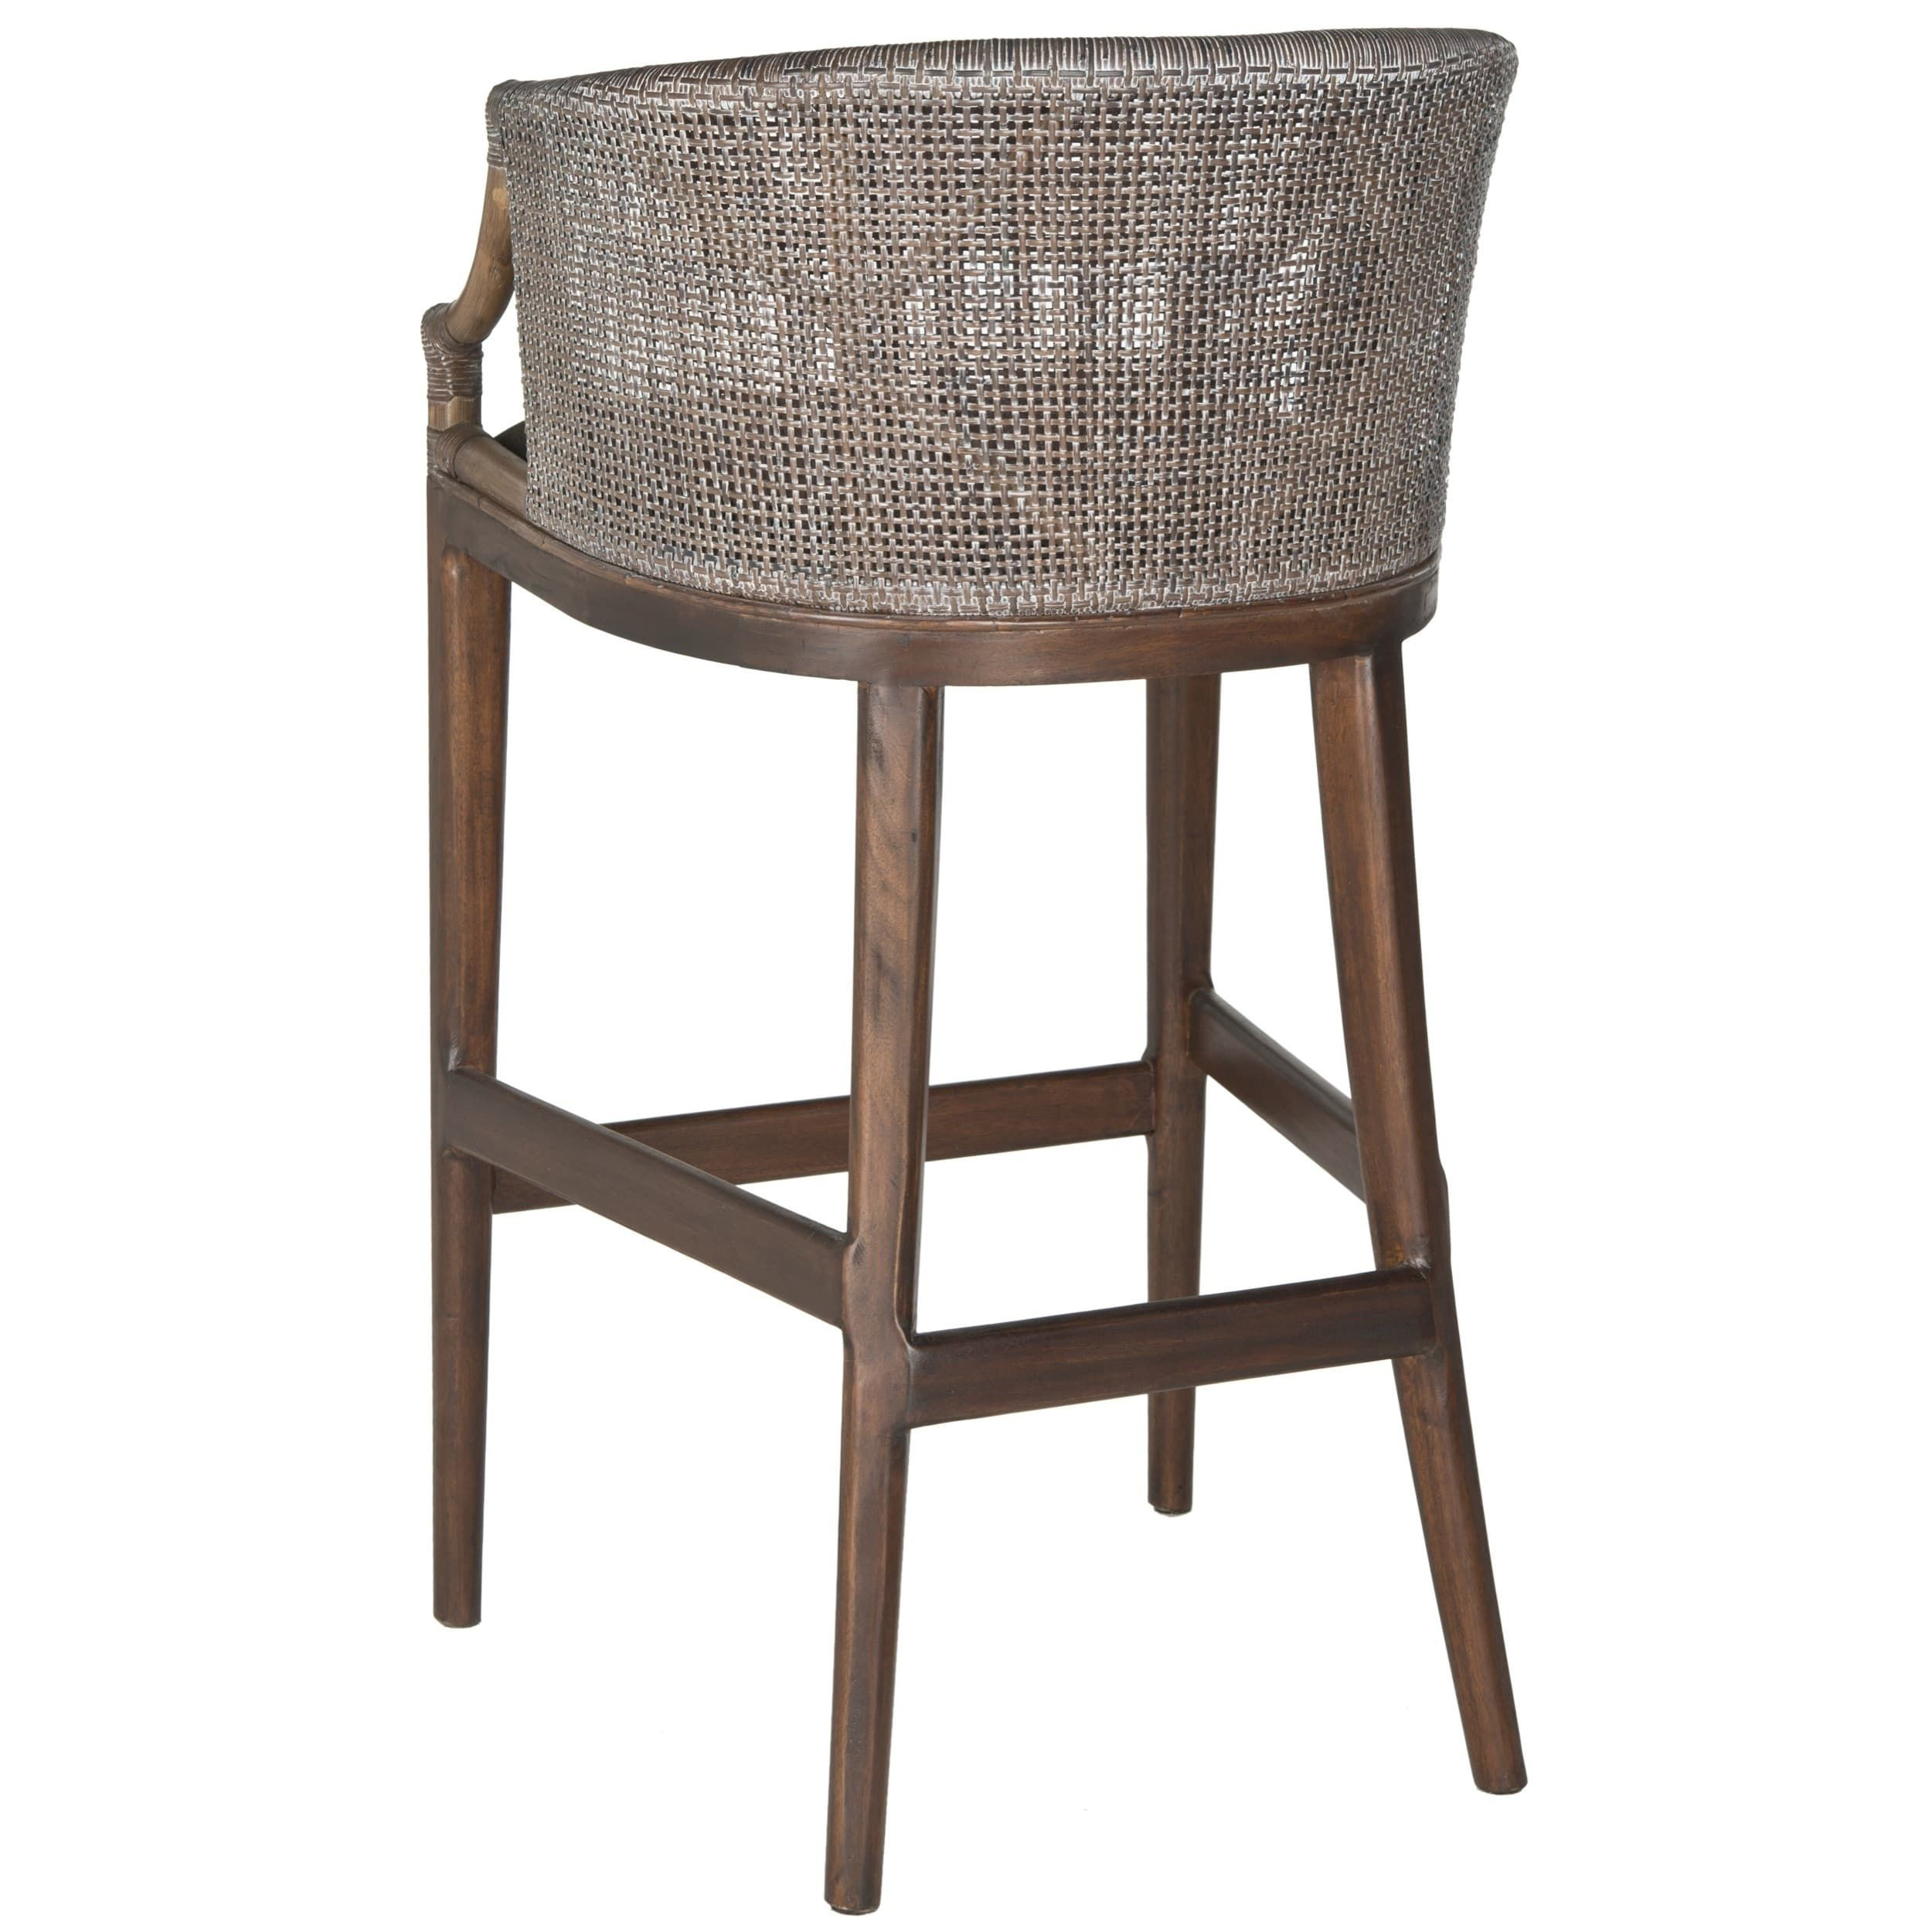 Surprising Safavieh Rural Woven Dining 28 Inch Brando Brown Bar Stool Pdpeps Interior Chair Design Pdpepsorg